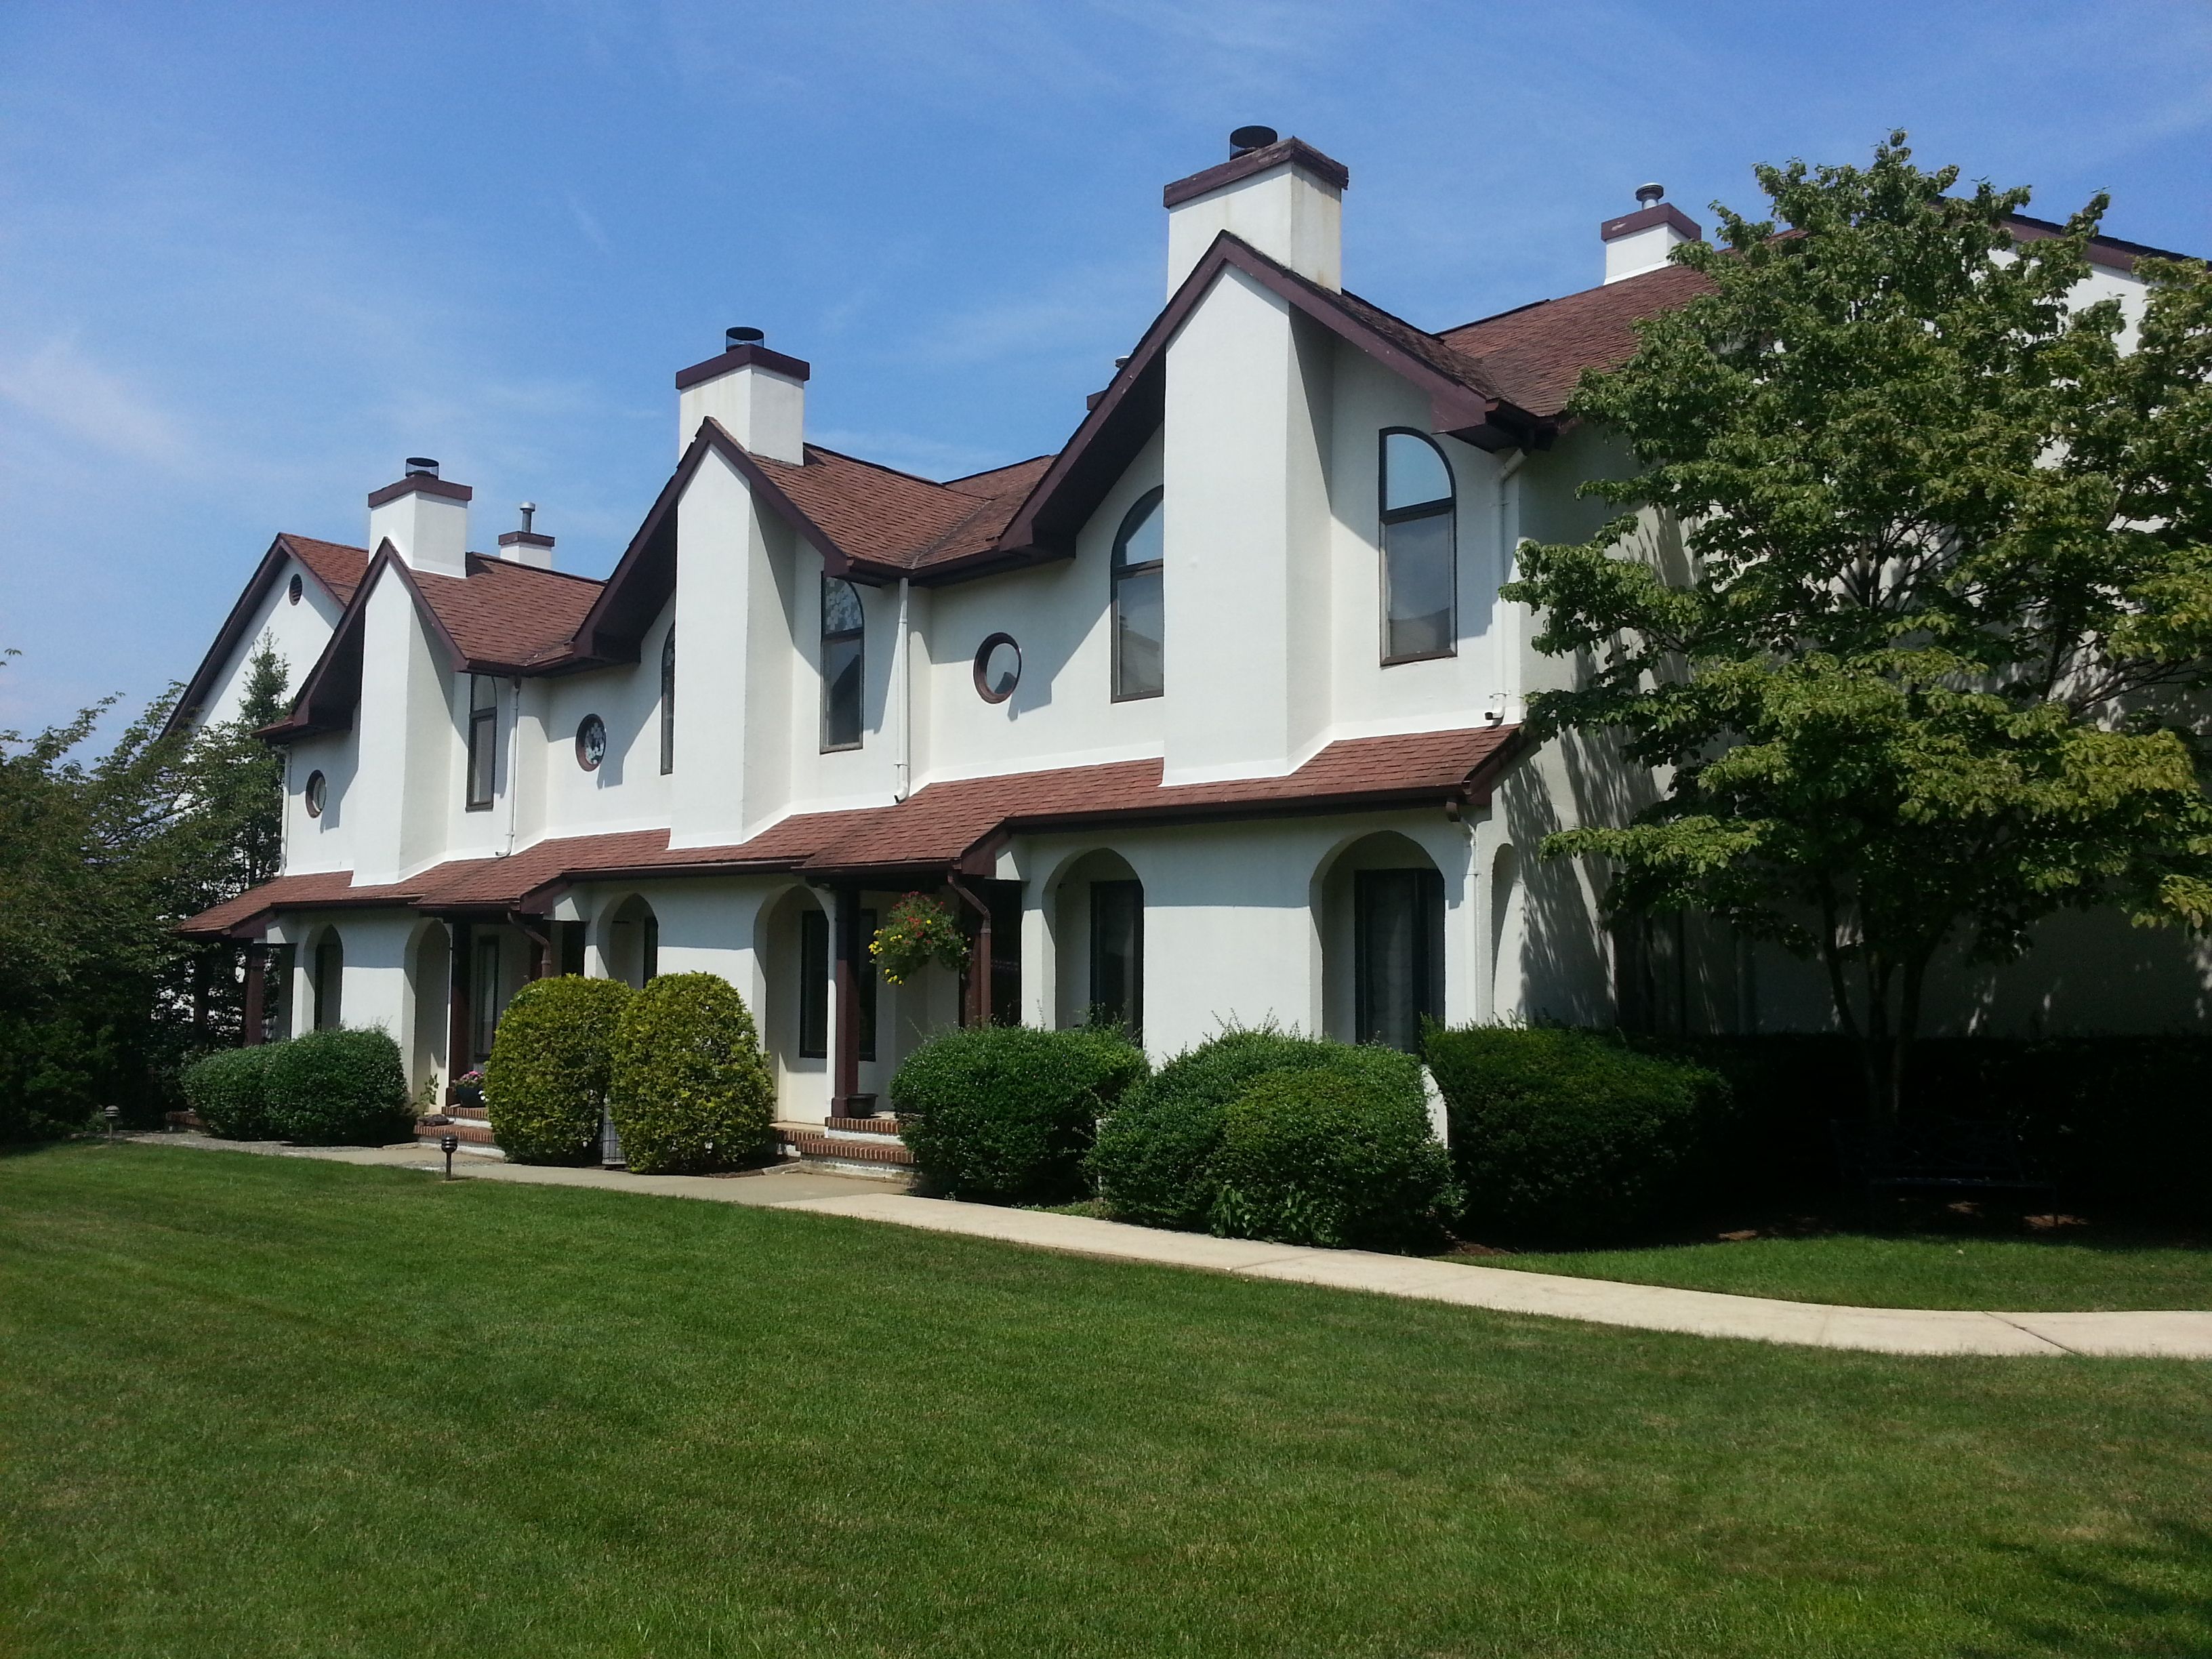 Tower Hill Condominium is located off of Prospect Avenue in Red Bank.